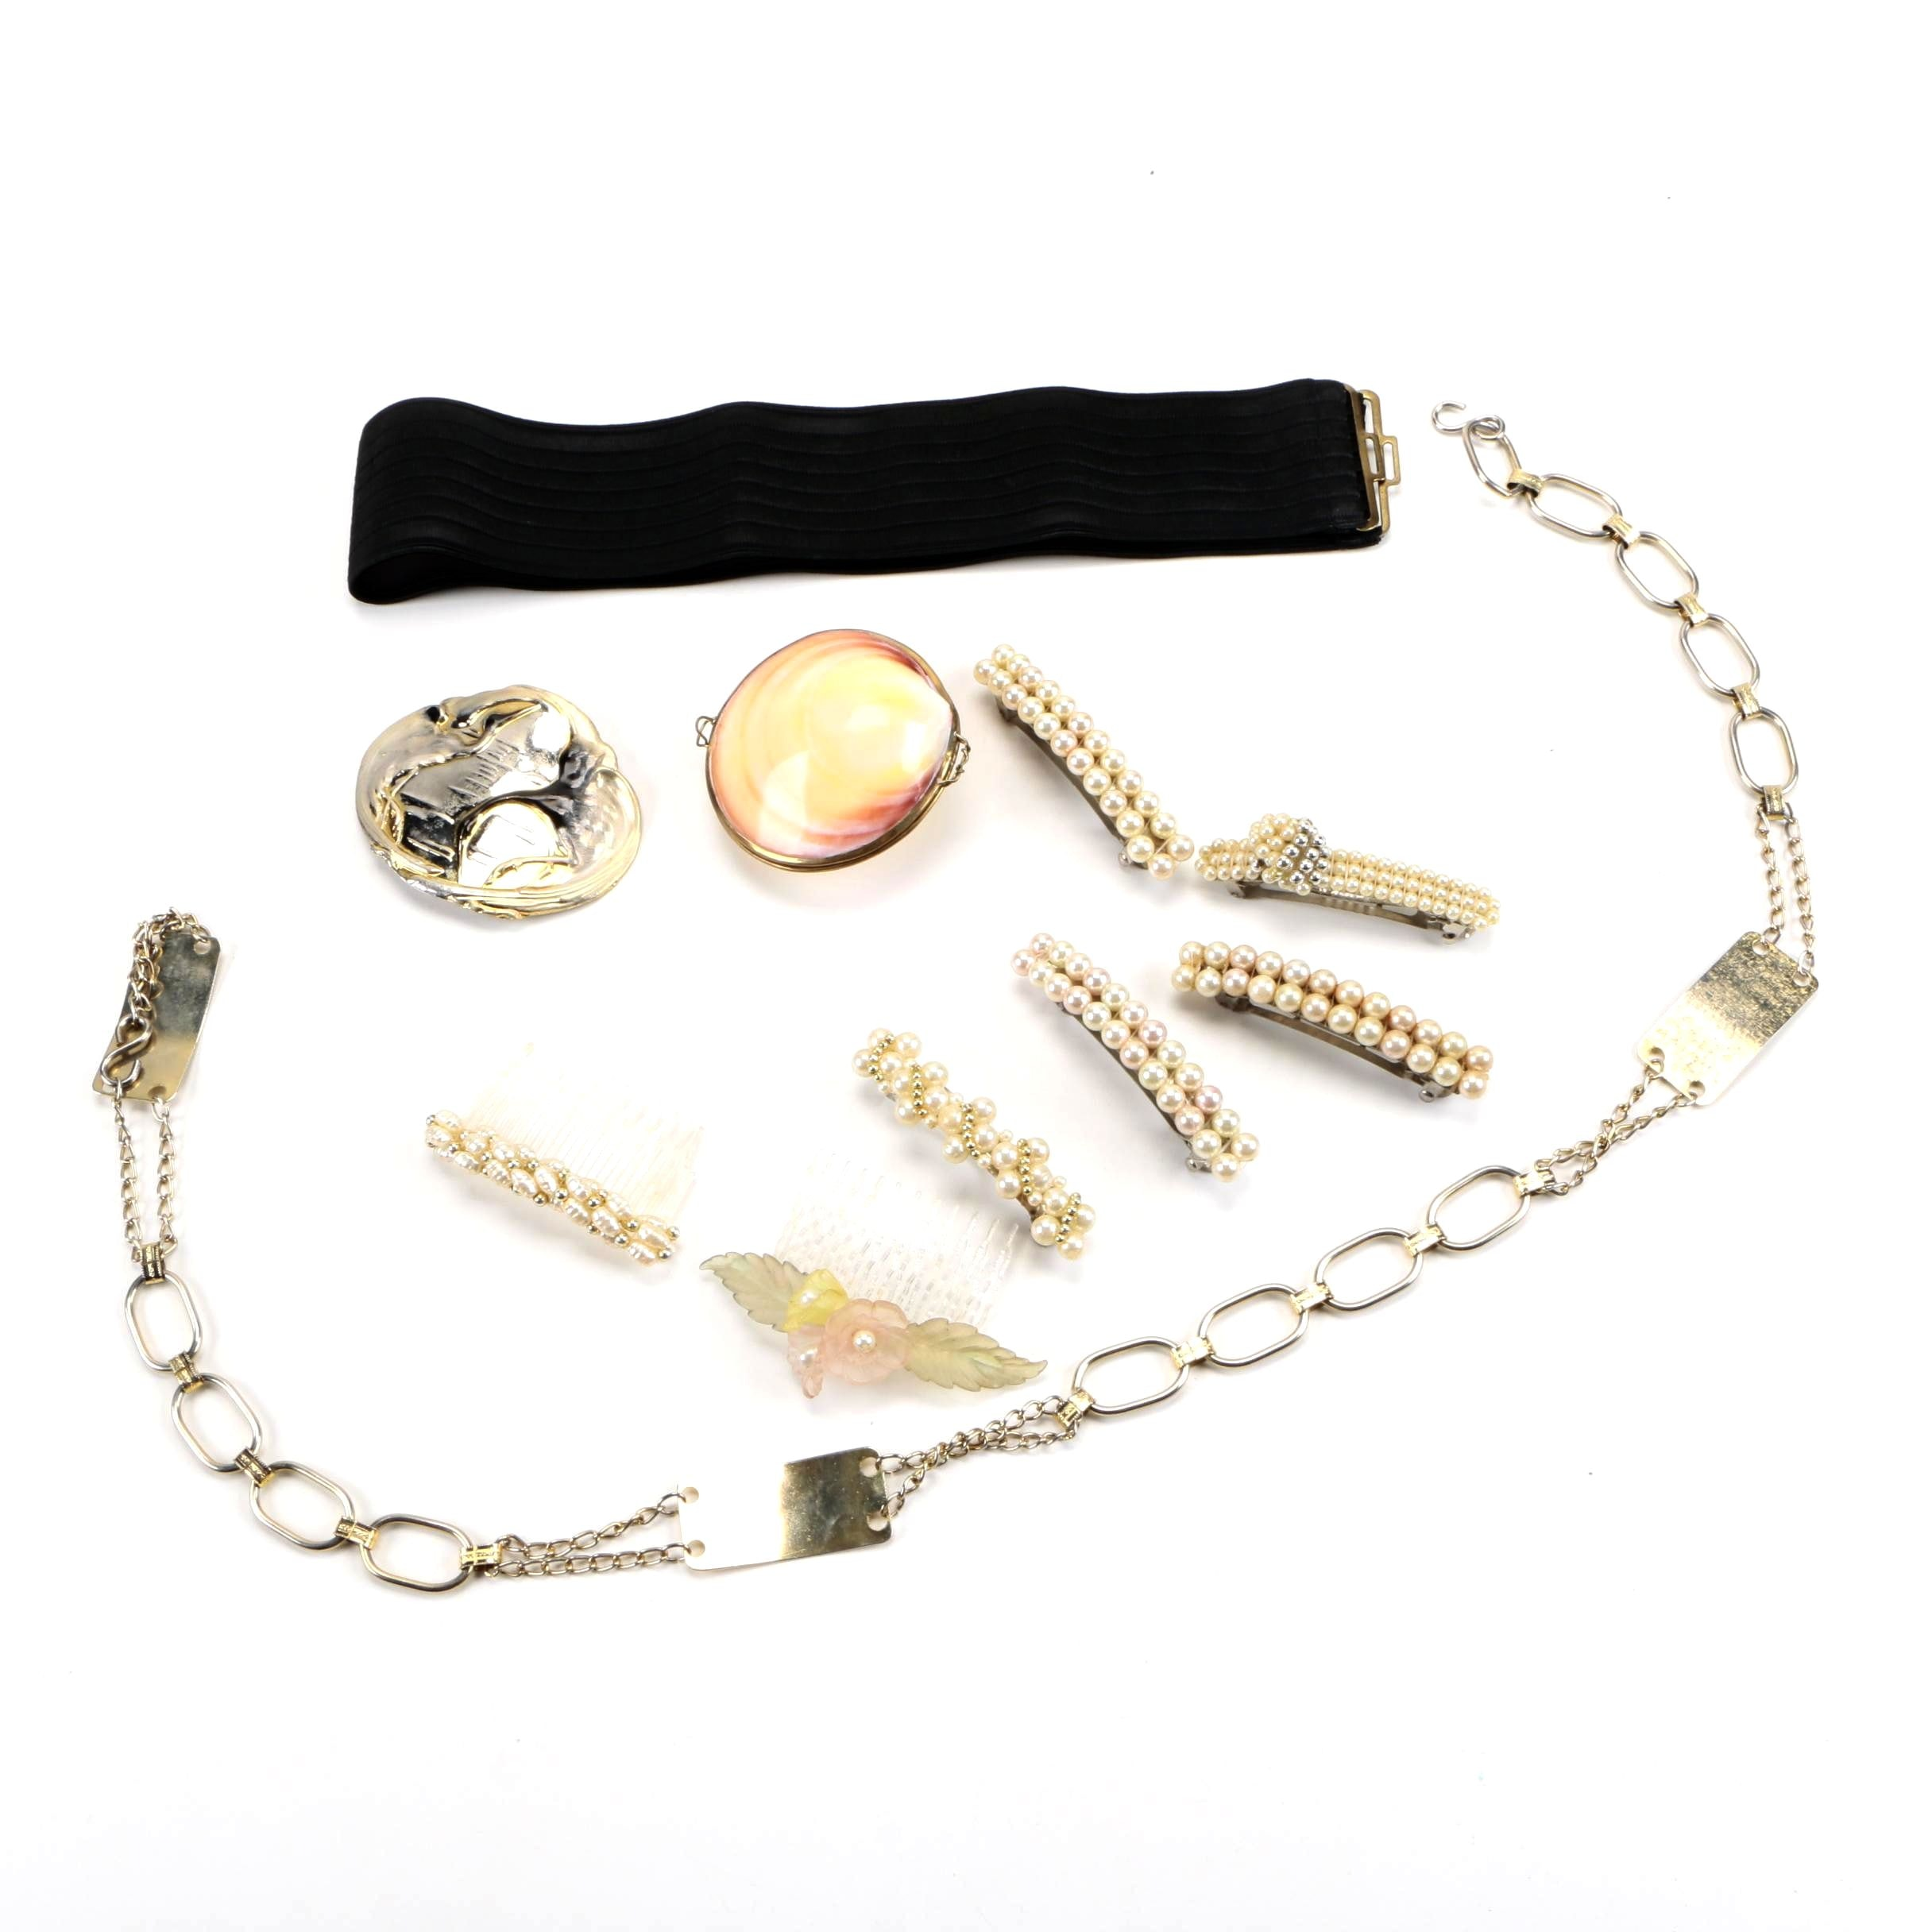 Vintage Accessories Including a Shell Trinket Case & Faux Pearls